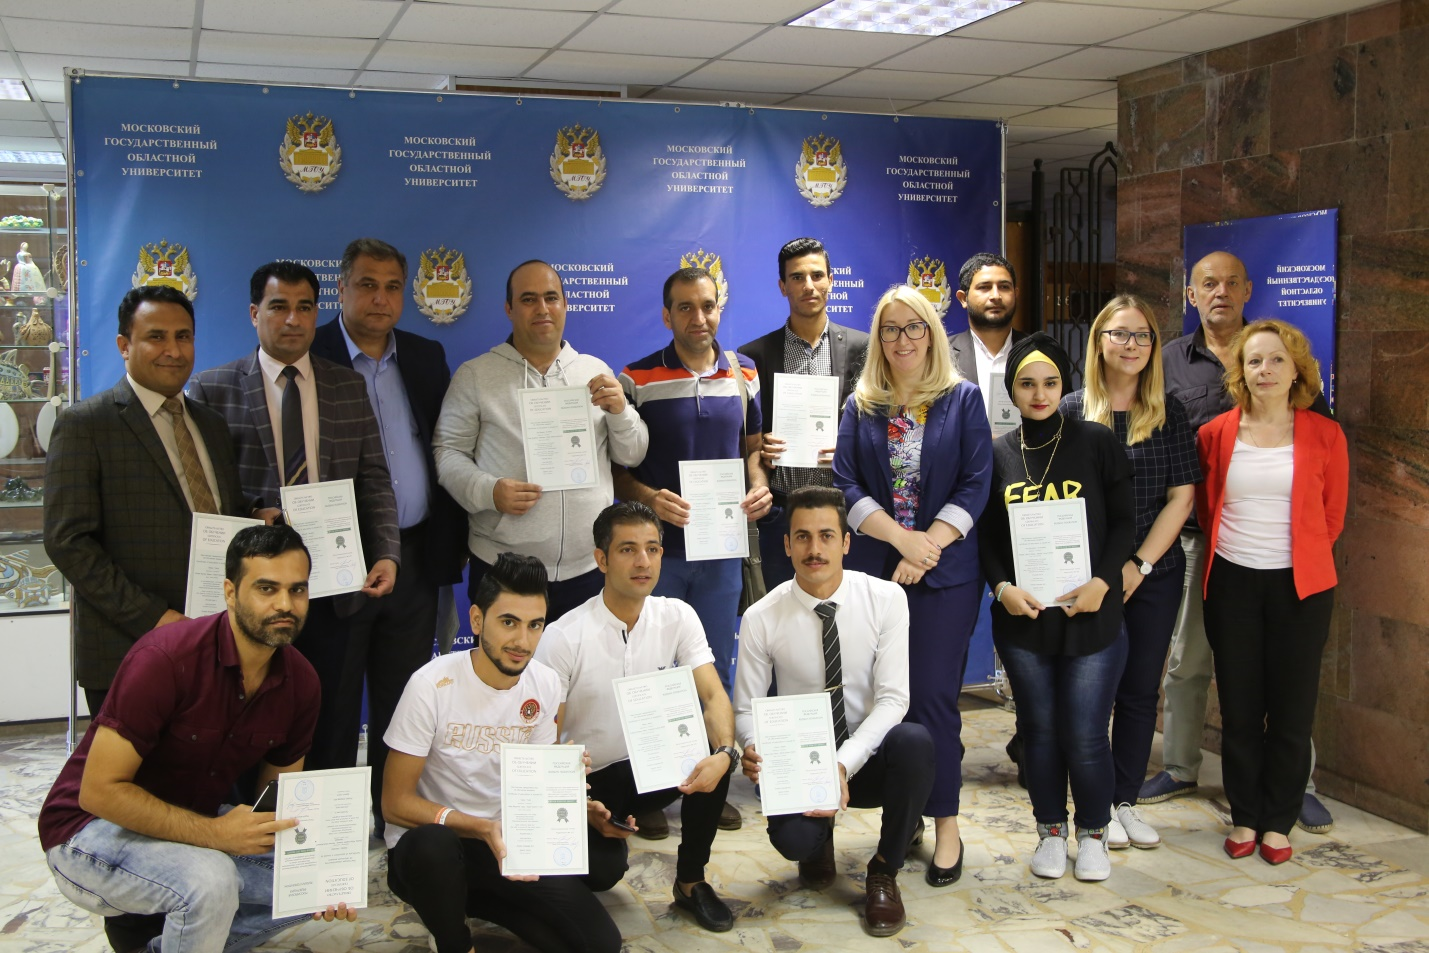 PRESENTATION OF CERTIFICATES TO STUDENTS OF BAGHDAD UNIVERSITY